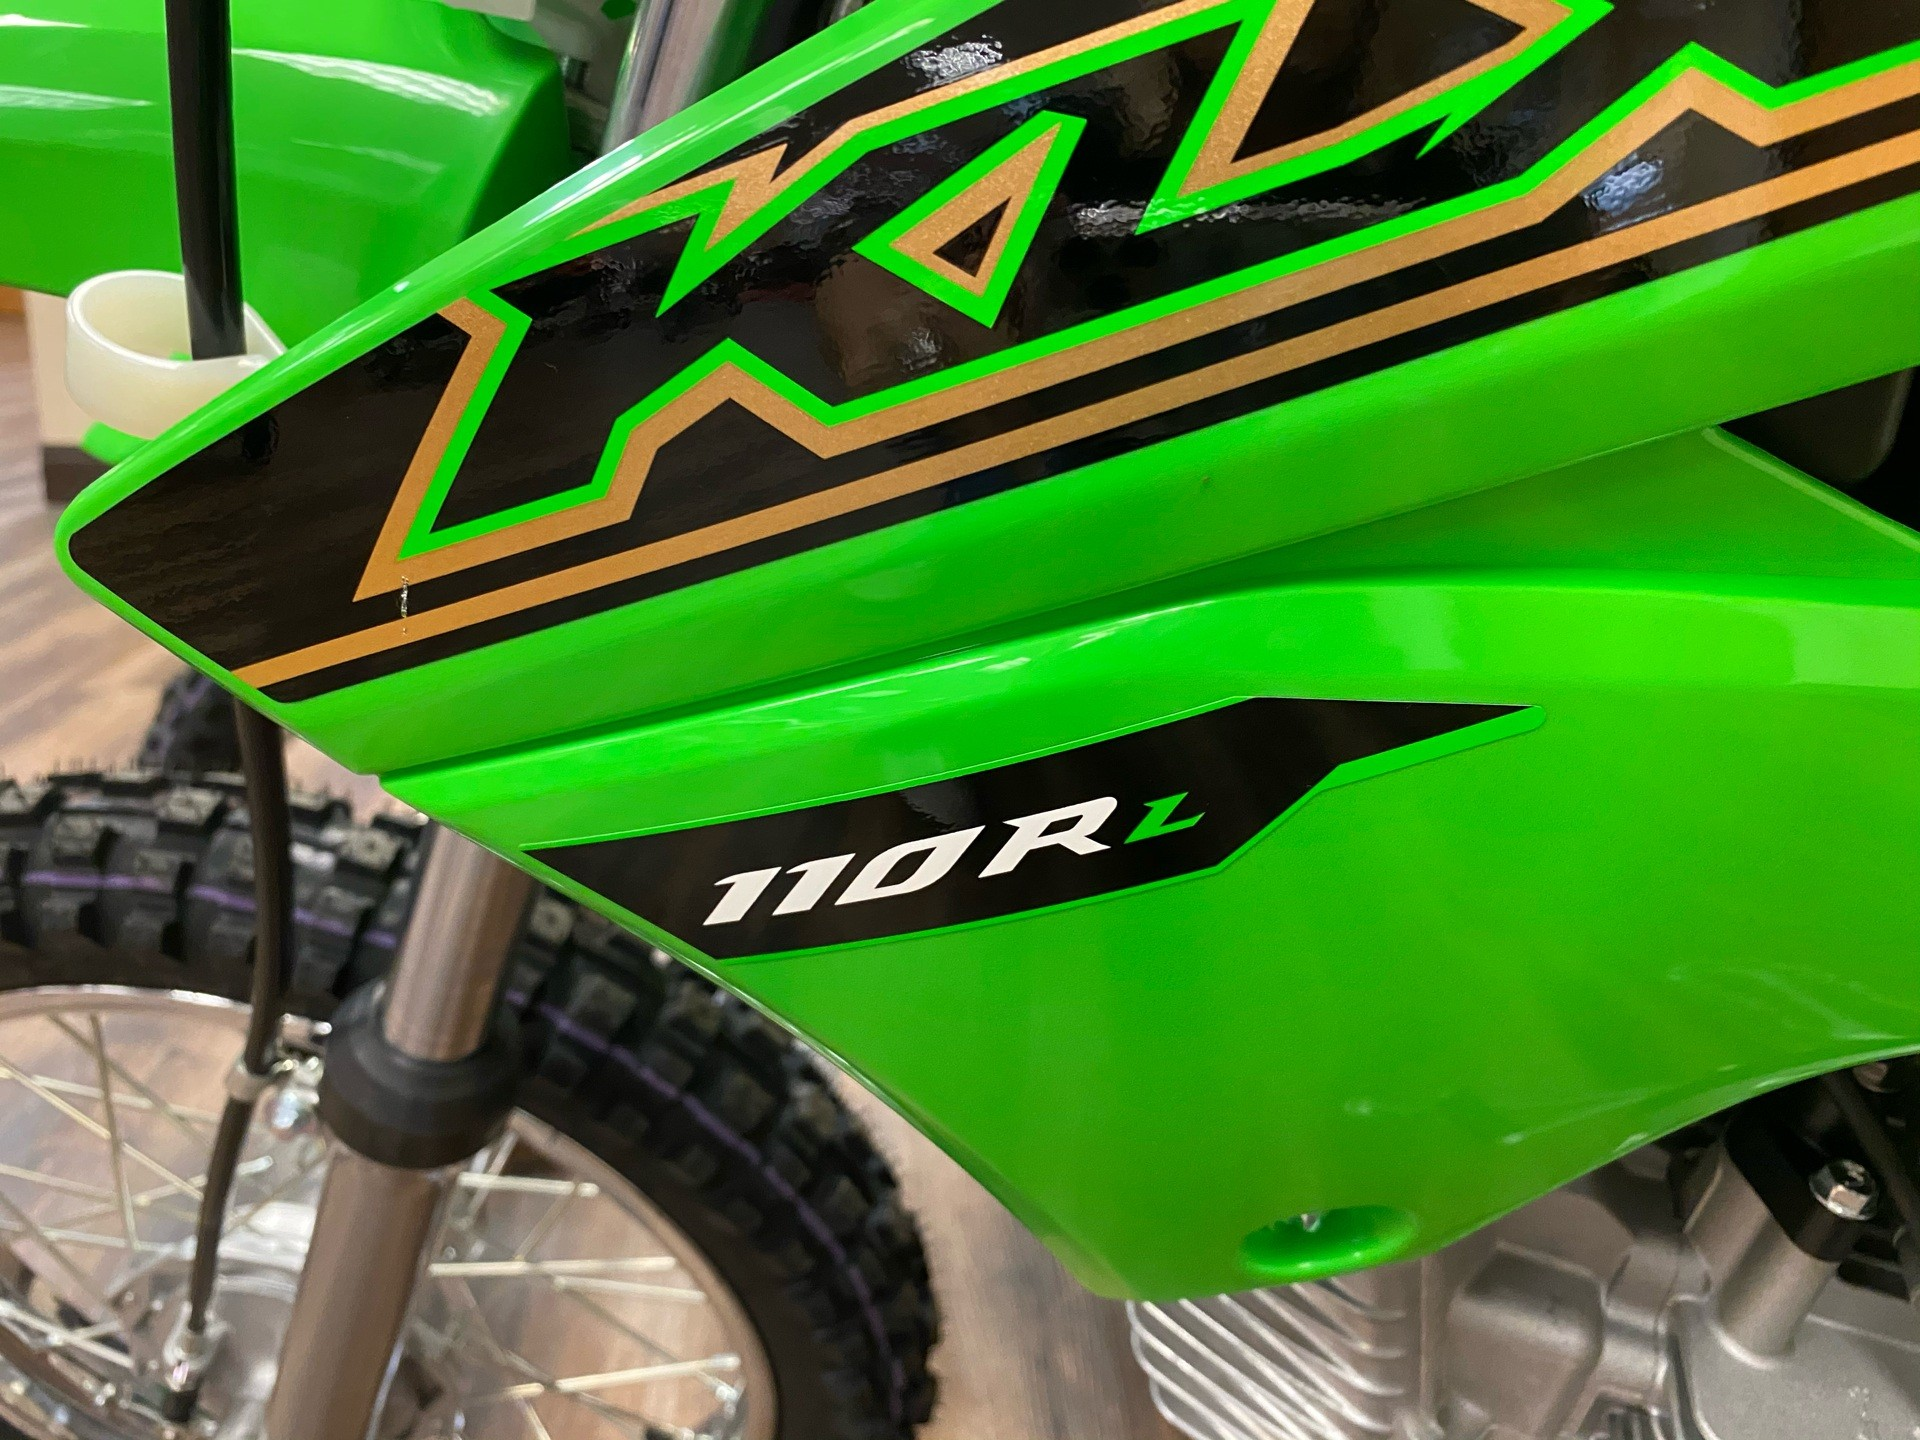 2021 Kawasaki KLX 110R L in Statesville, North Carolina - Photo 2